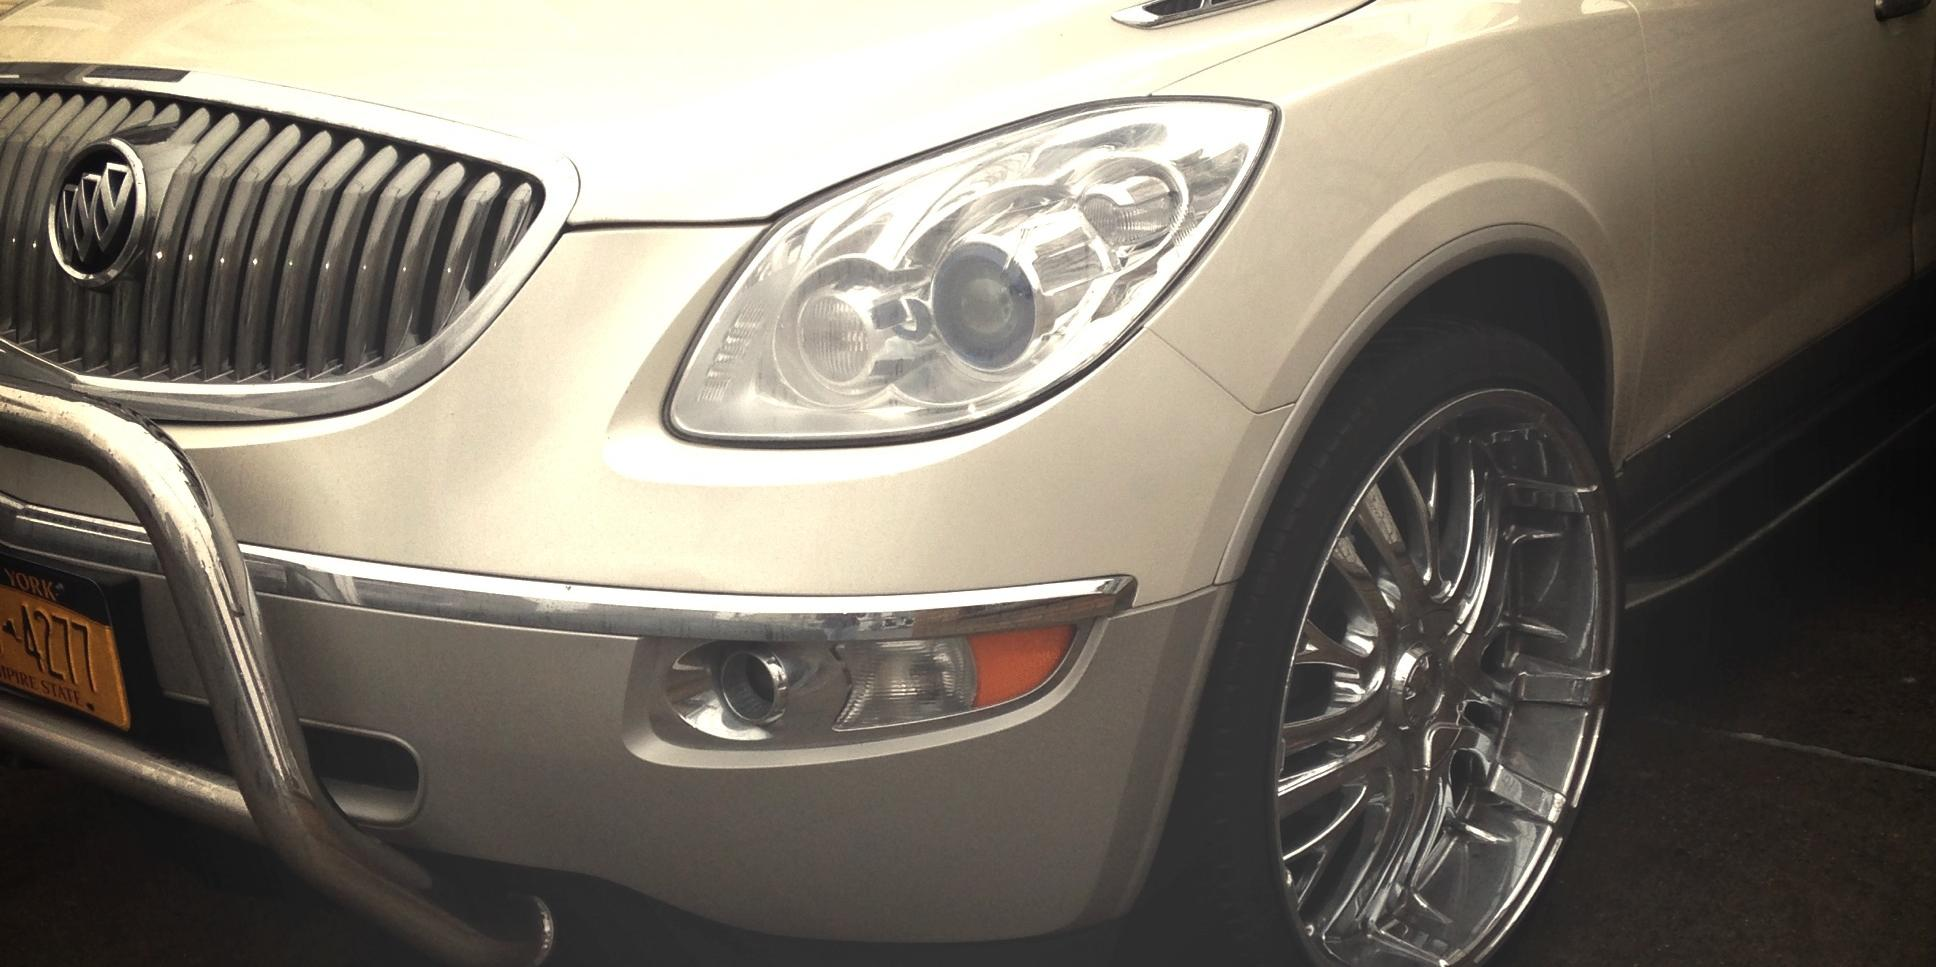 on 2010 Buick Enclave Cxl